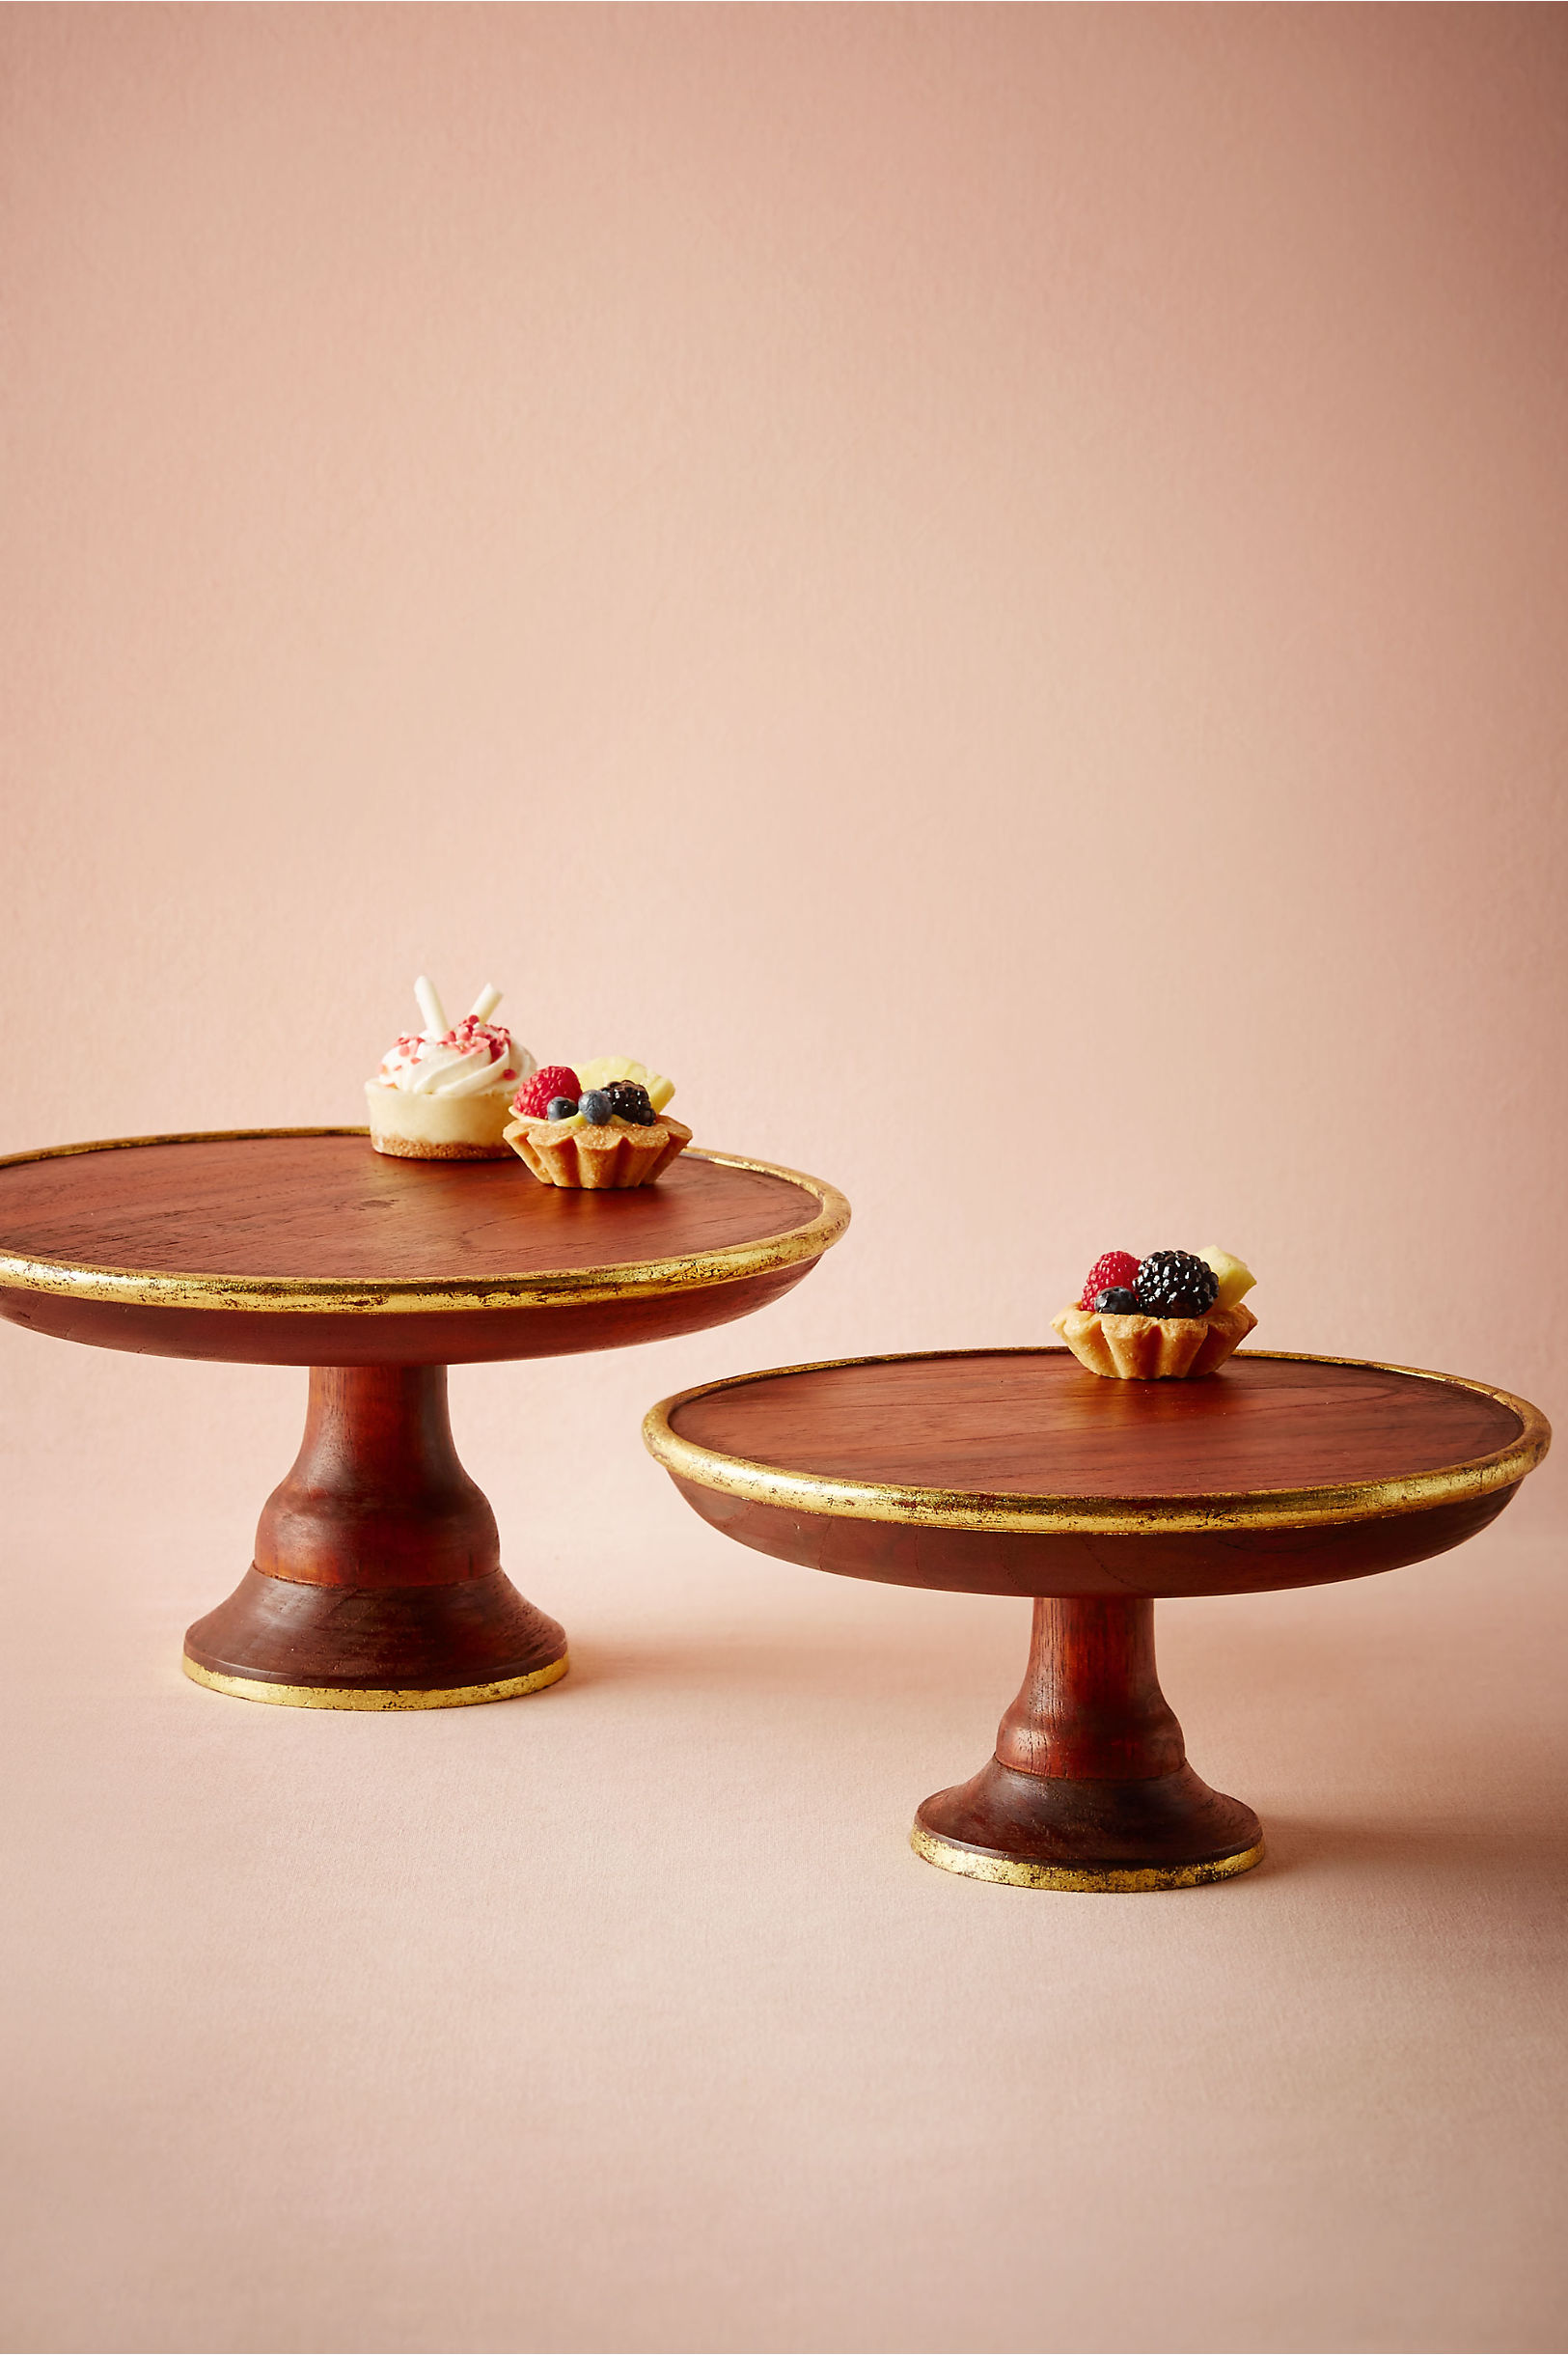 Gilded Wood Cake Stand in Sale Just Added at BHLDN